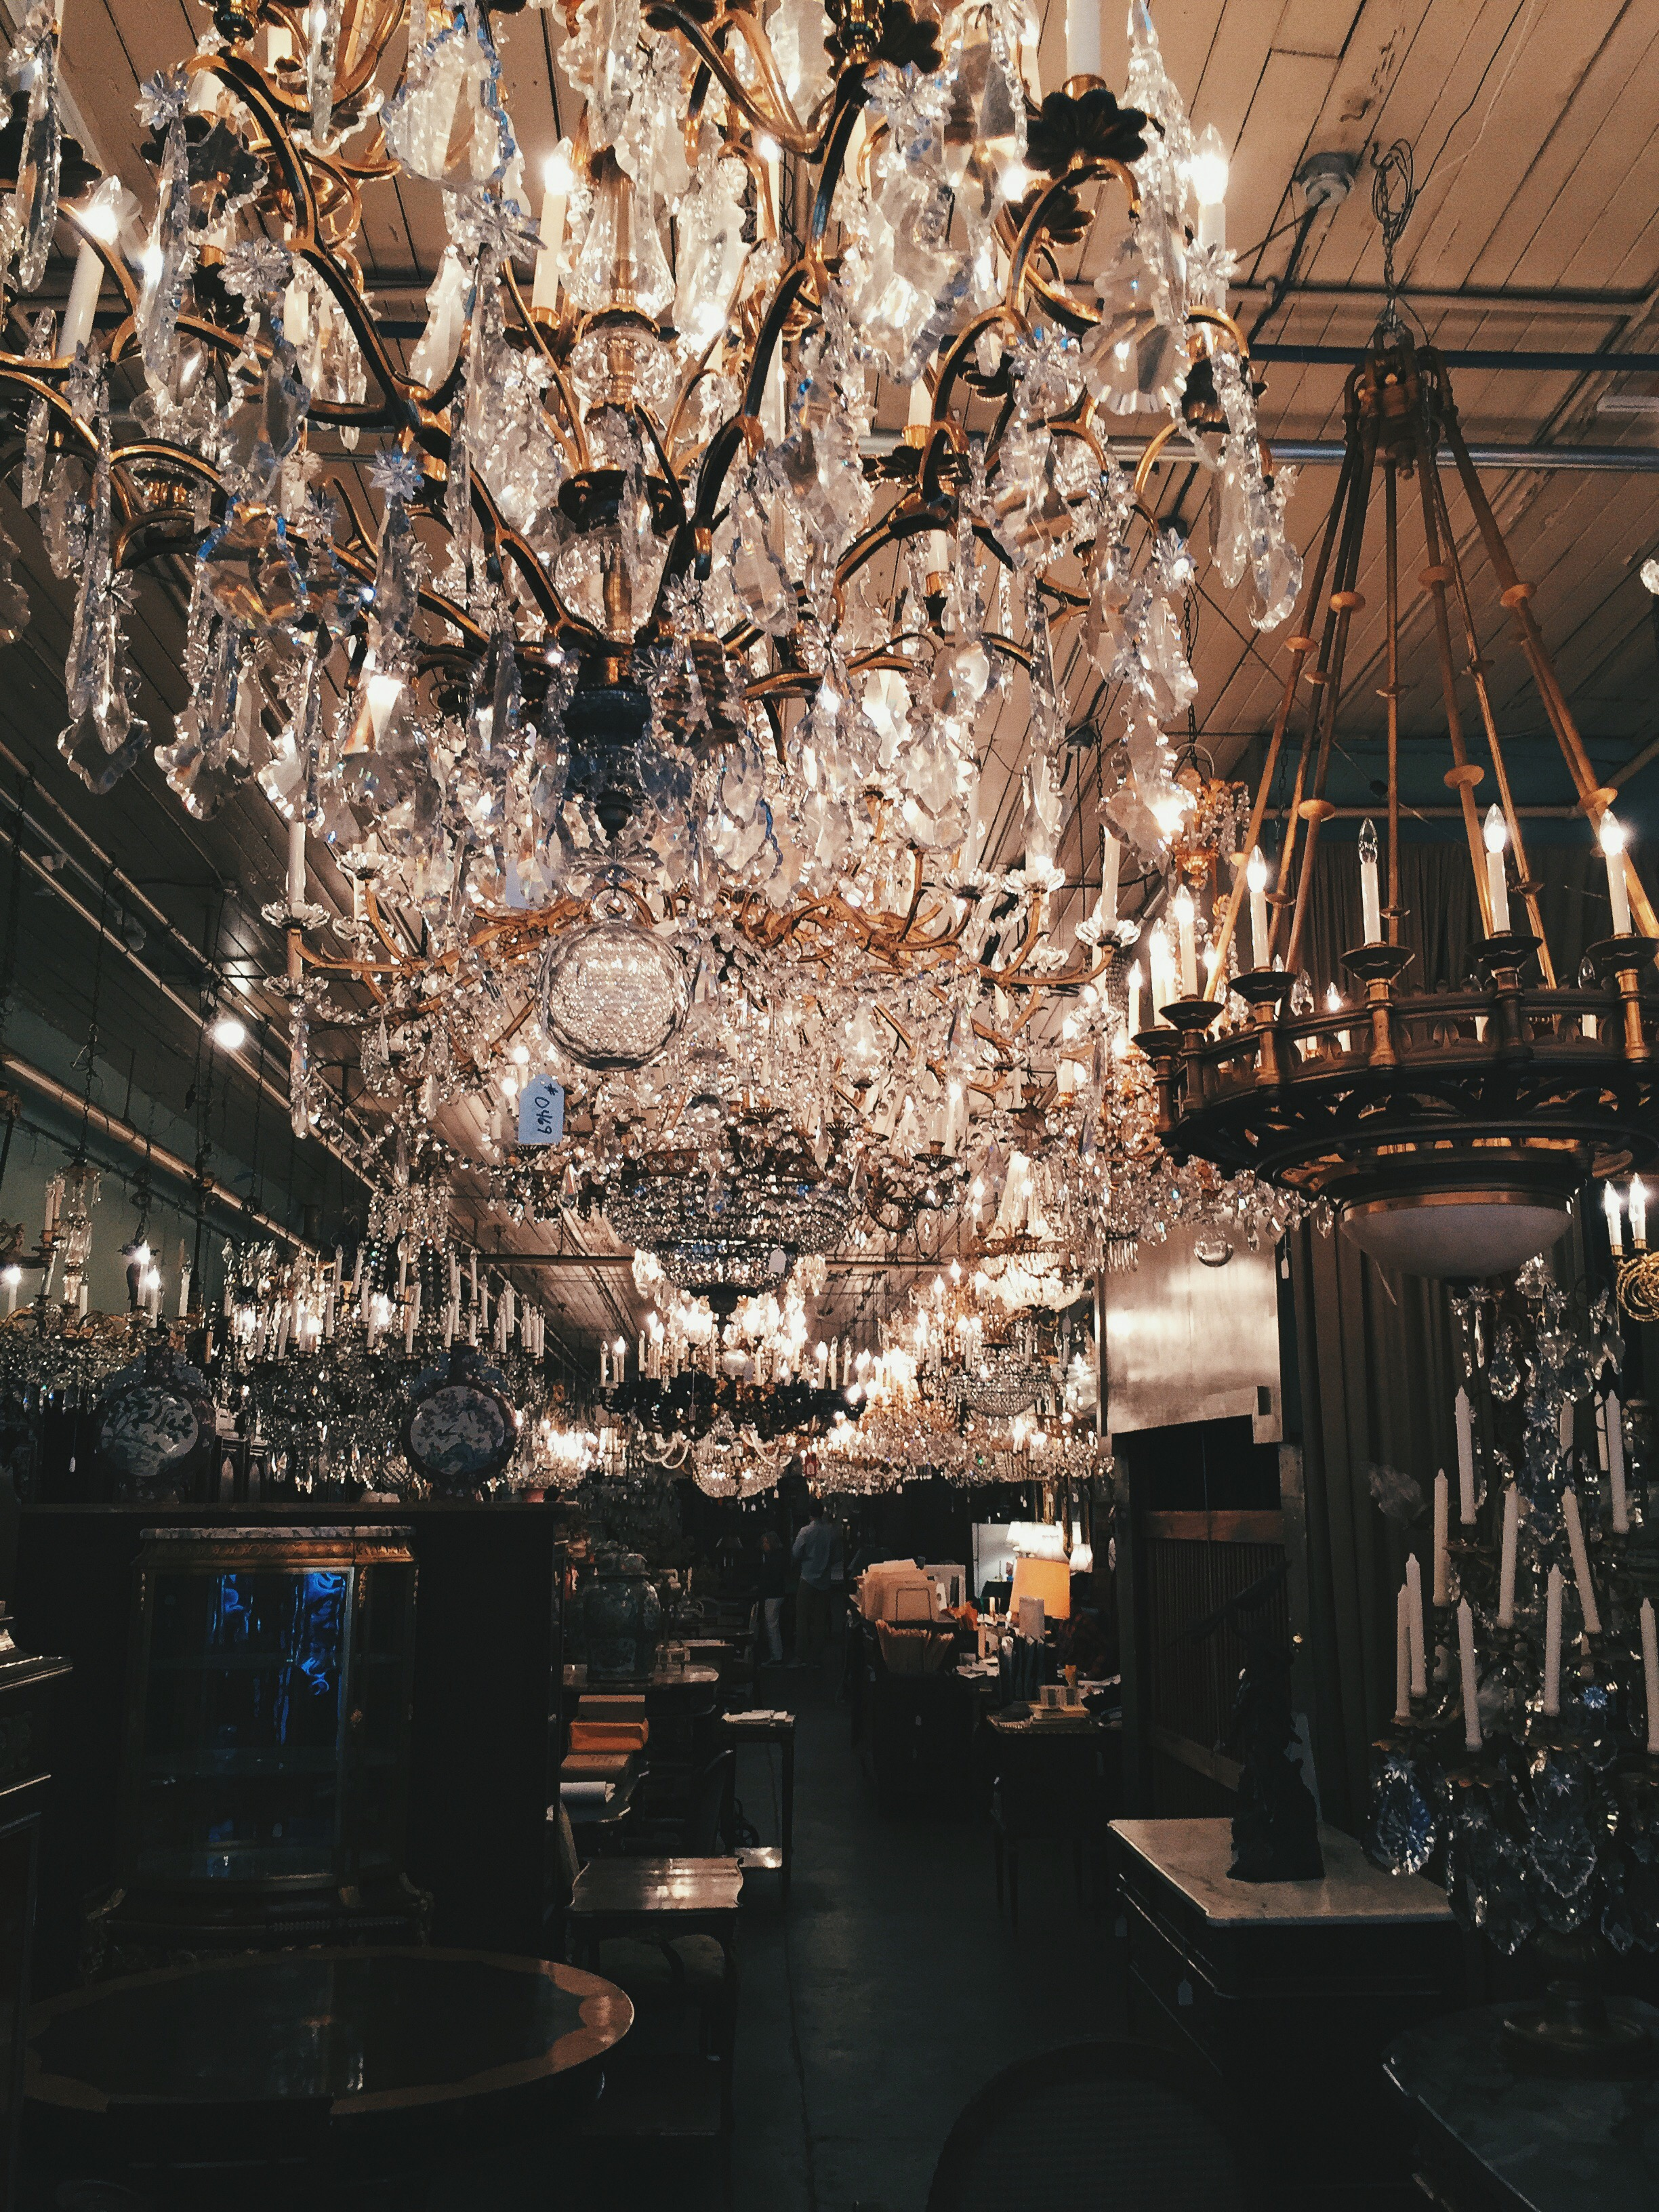 I found an old French Antique chandelier shop.